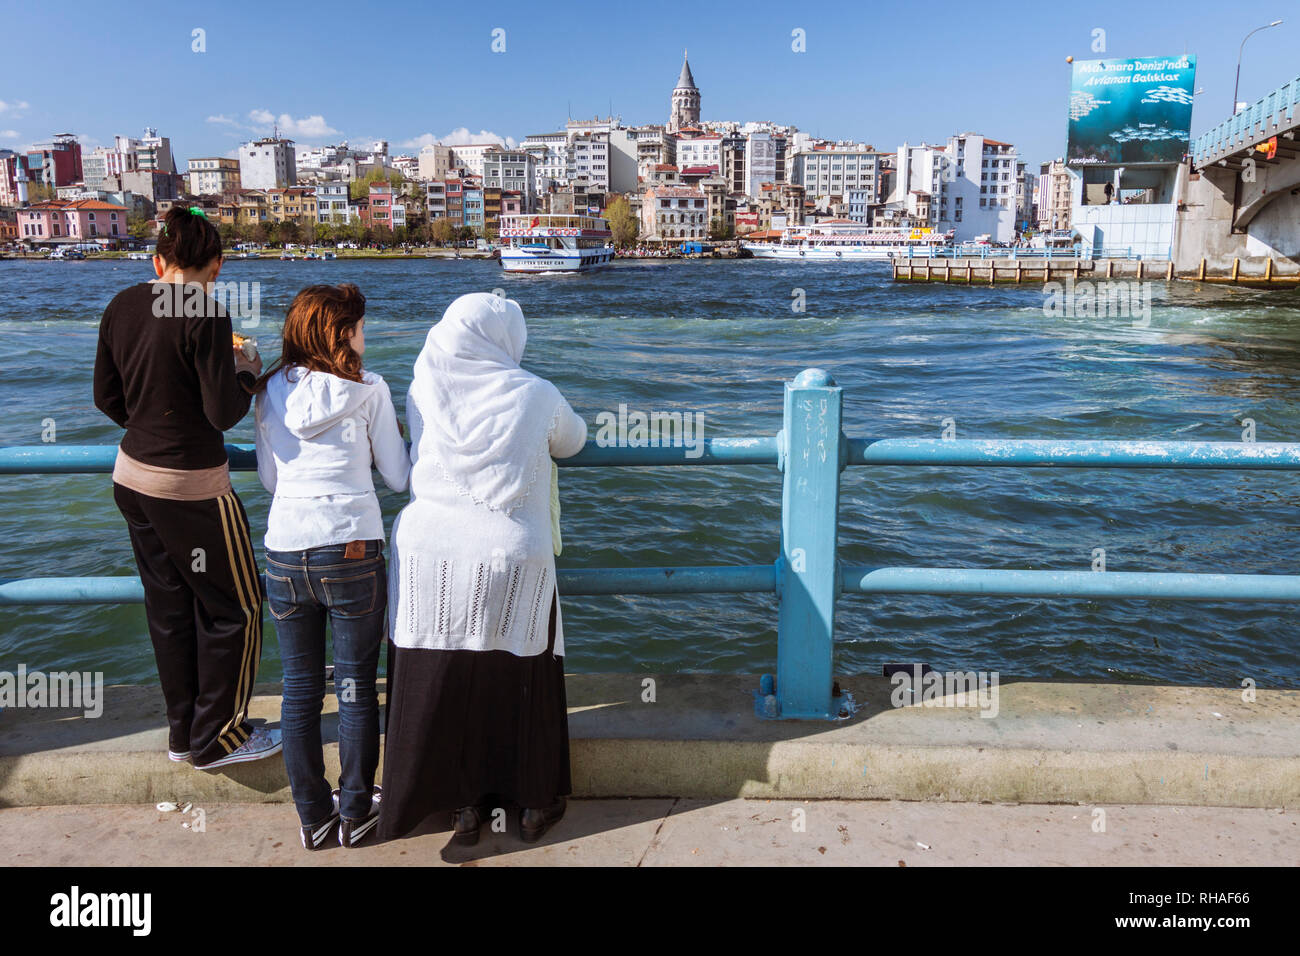 Istanbul, Turchia : ThreeTurkish le donne guardano al Golden Horn e lo storico quartiere di Galata. Immagini Stock